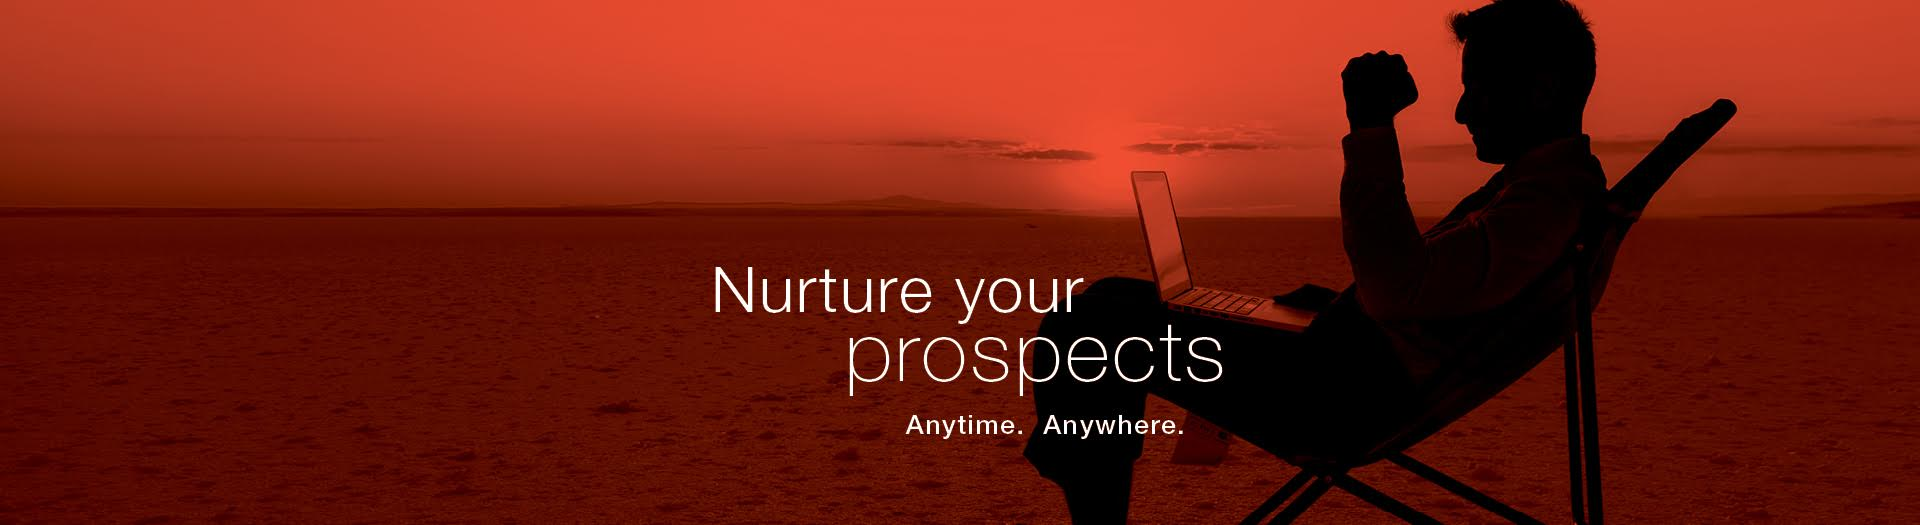 Nurture-your-prospects